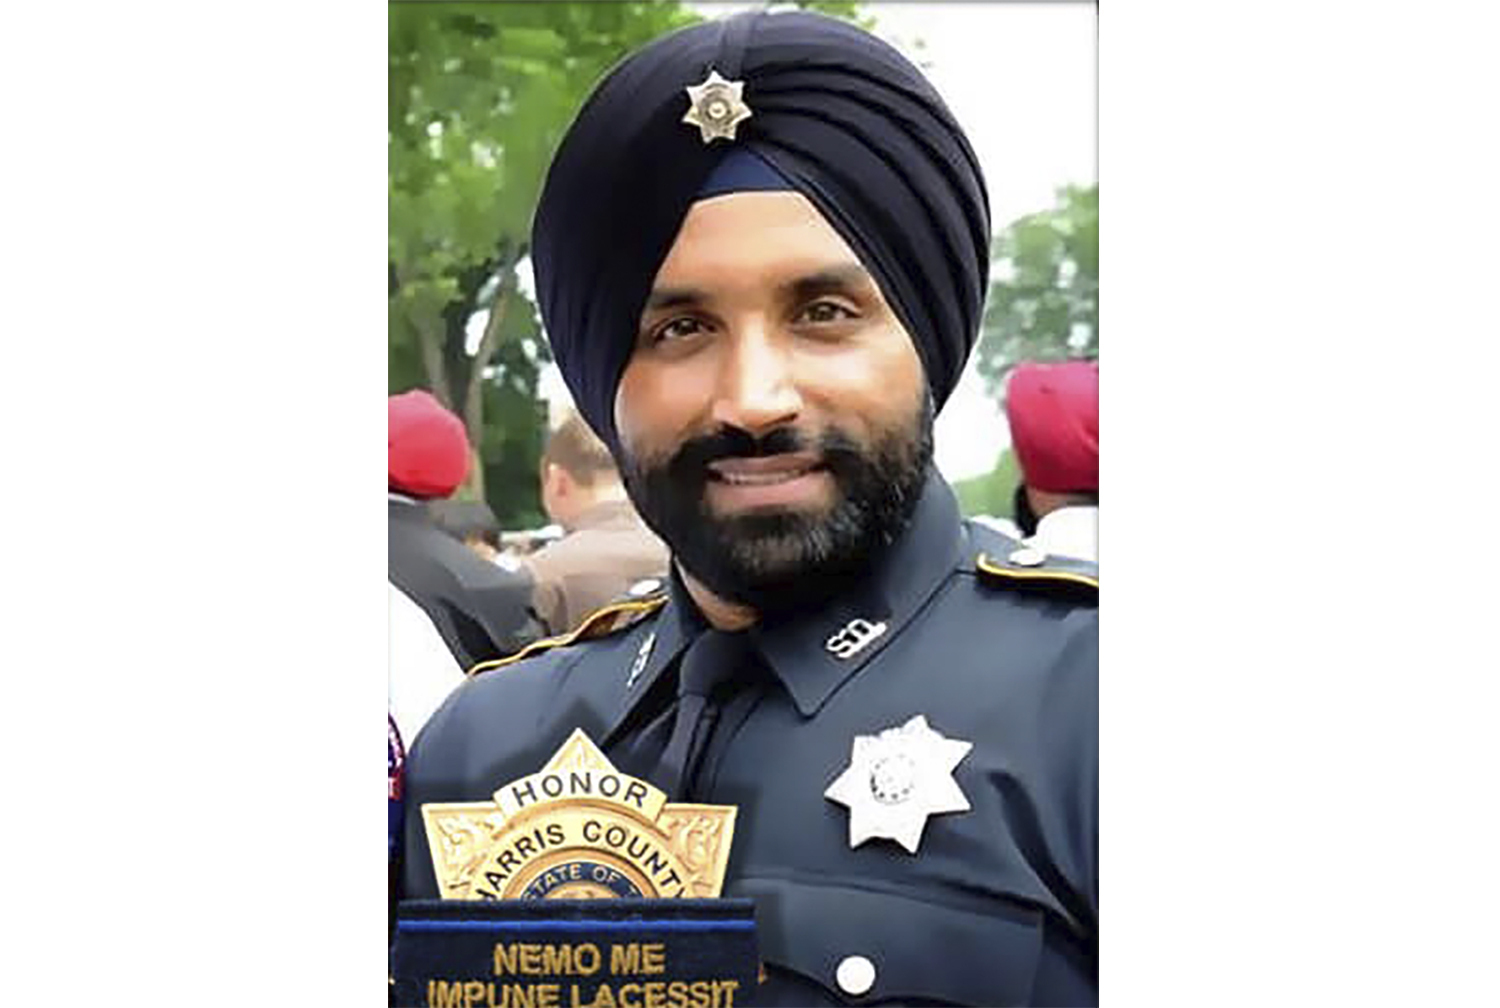 This photo provided by Harris County Sheriff's office shows Deputy Sandeep Dhaliwal. Dhaliwal was shot and killed while making a traffic stop Friday, Sept. 27, 2019 near Houston.